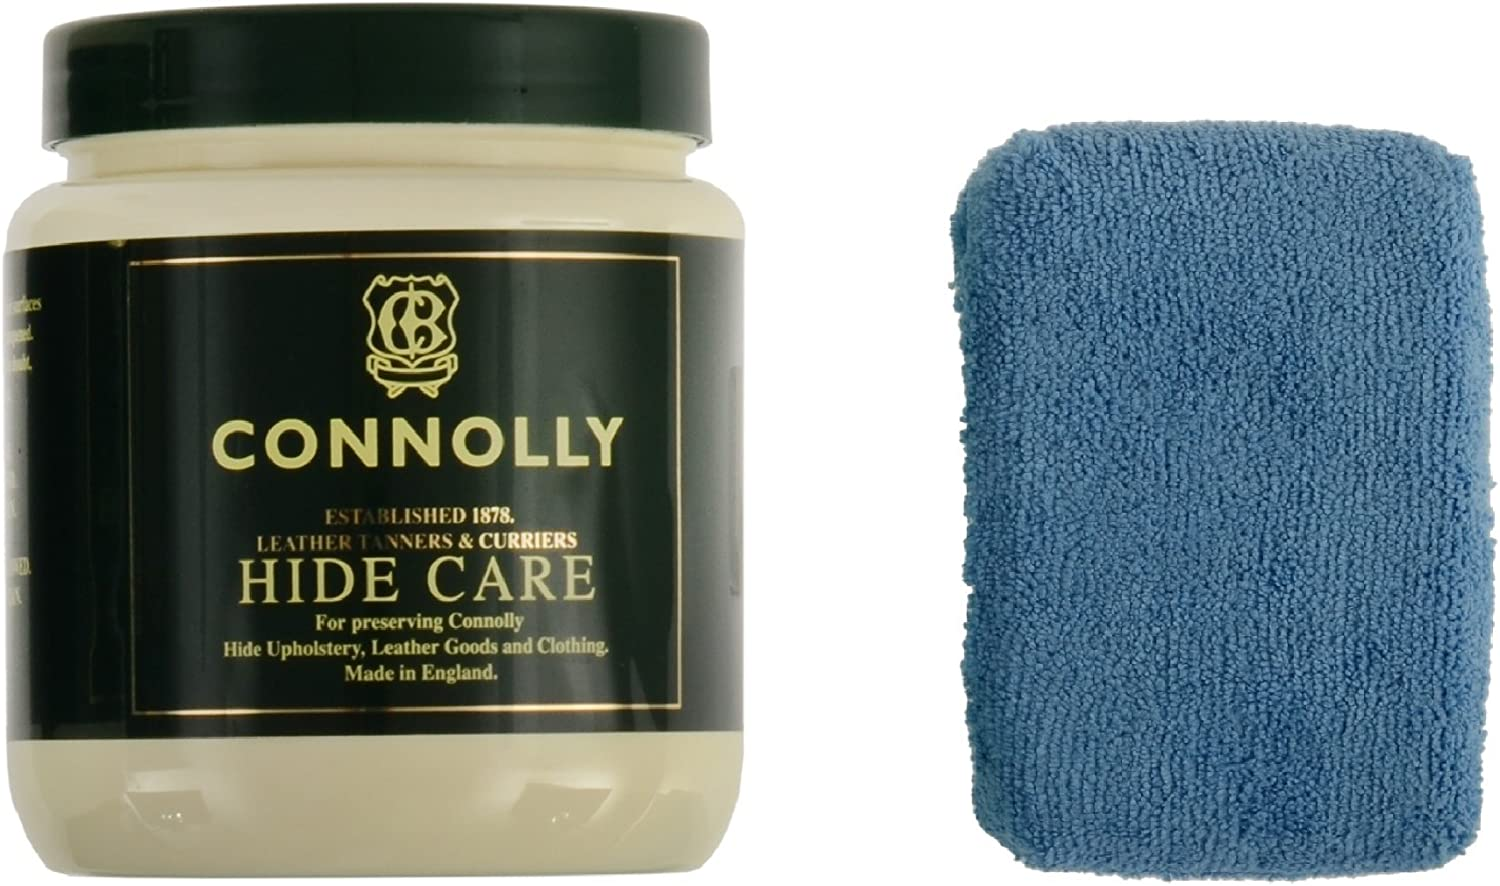 Connolly Hide Care Leather Conditioner & Restorer with Microfiber Applicator Sponge